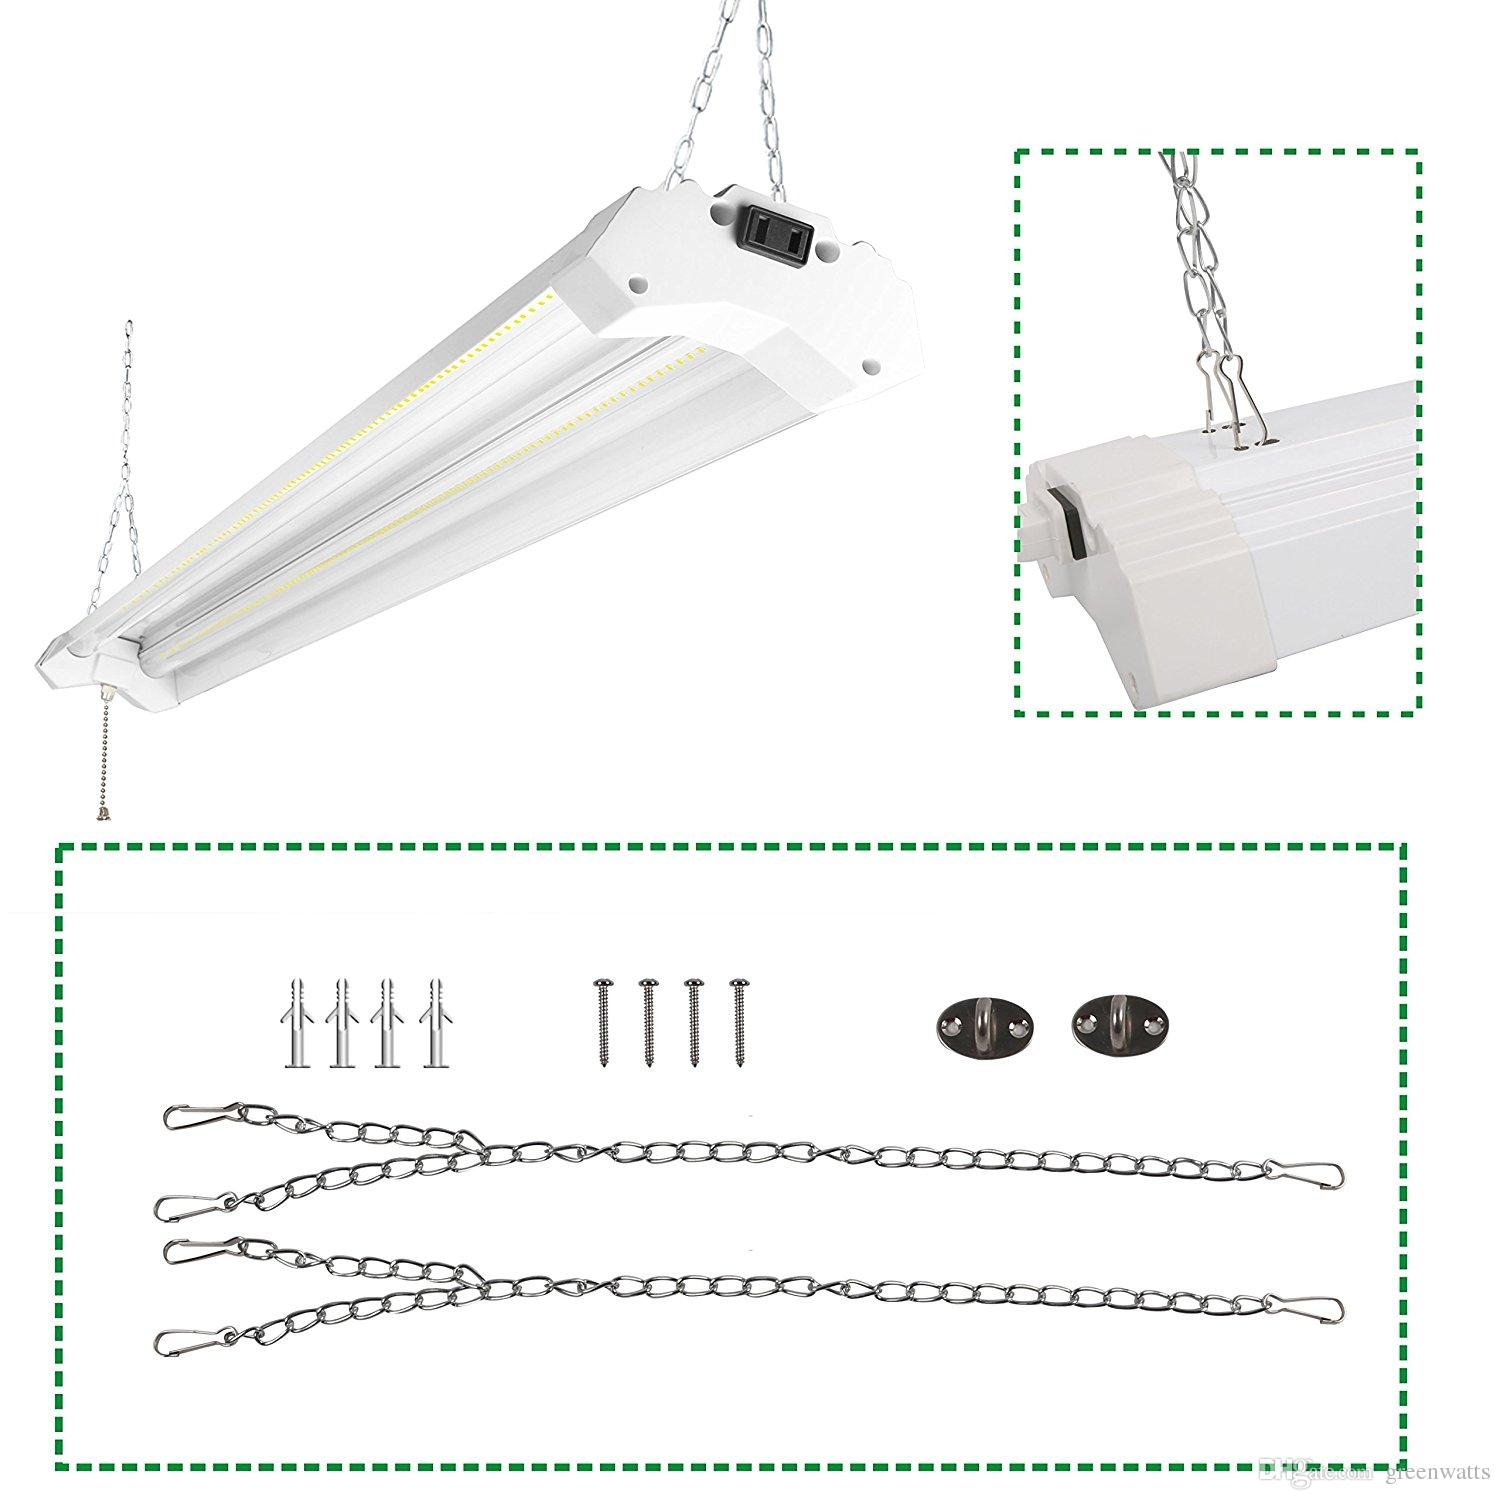 hight resolution of 2019 linkable led utility shop light 4ft 4800 lumens super bright 40w 5000k daylight etl certified led garage lights fixture durable led fixture from